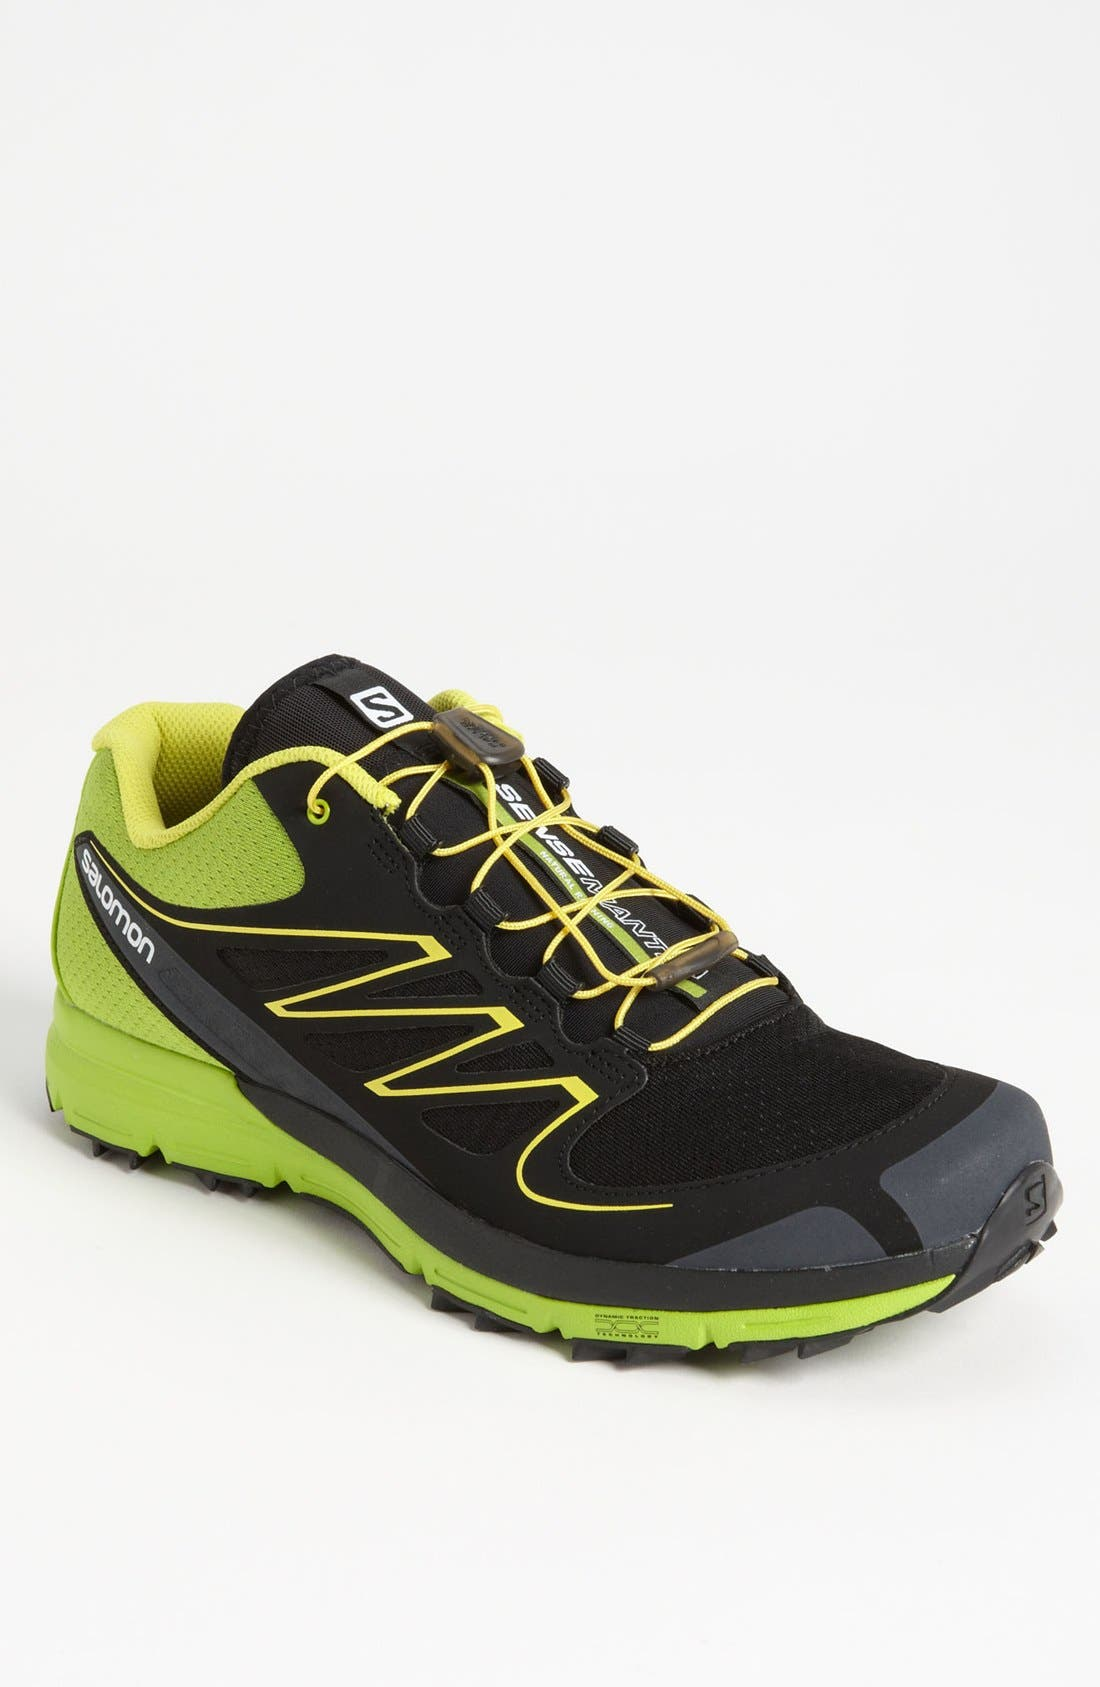 Alternate Image 1 Selected - Salomon 'Sense Mantra' Running Shoe (Men)